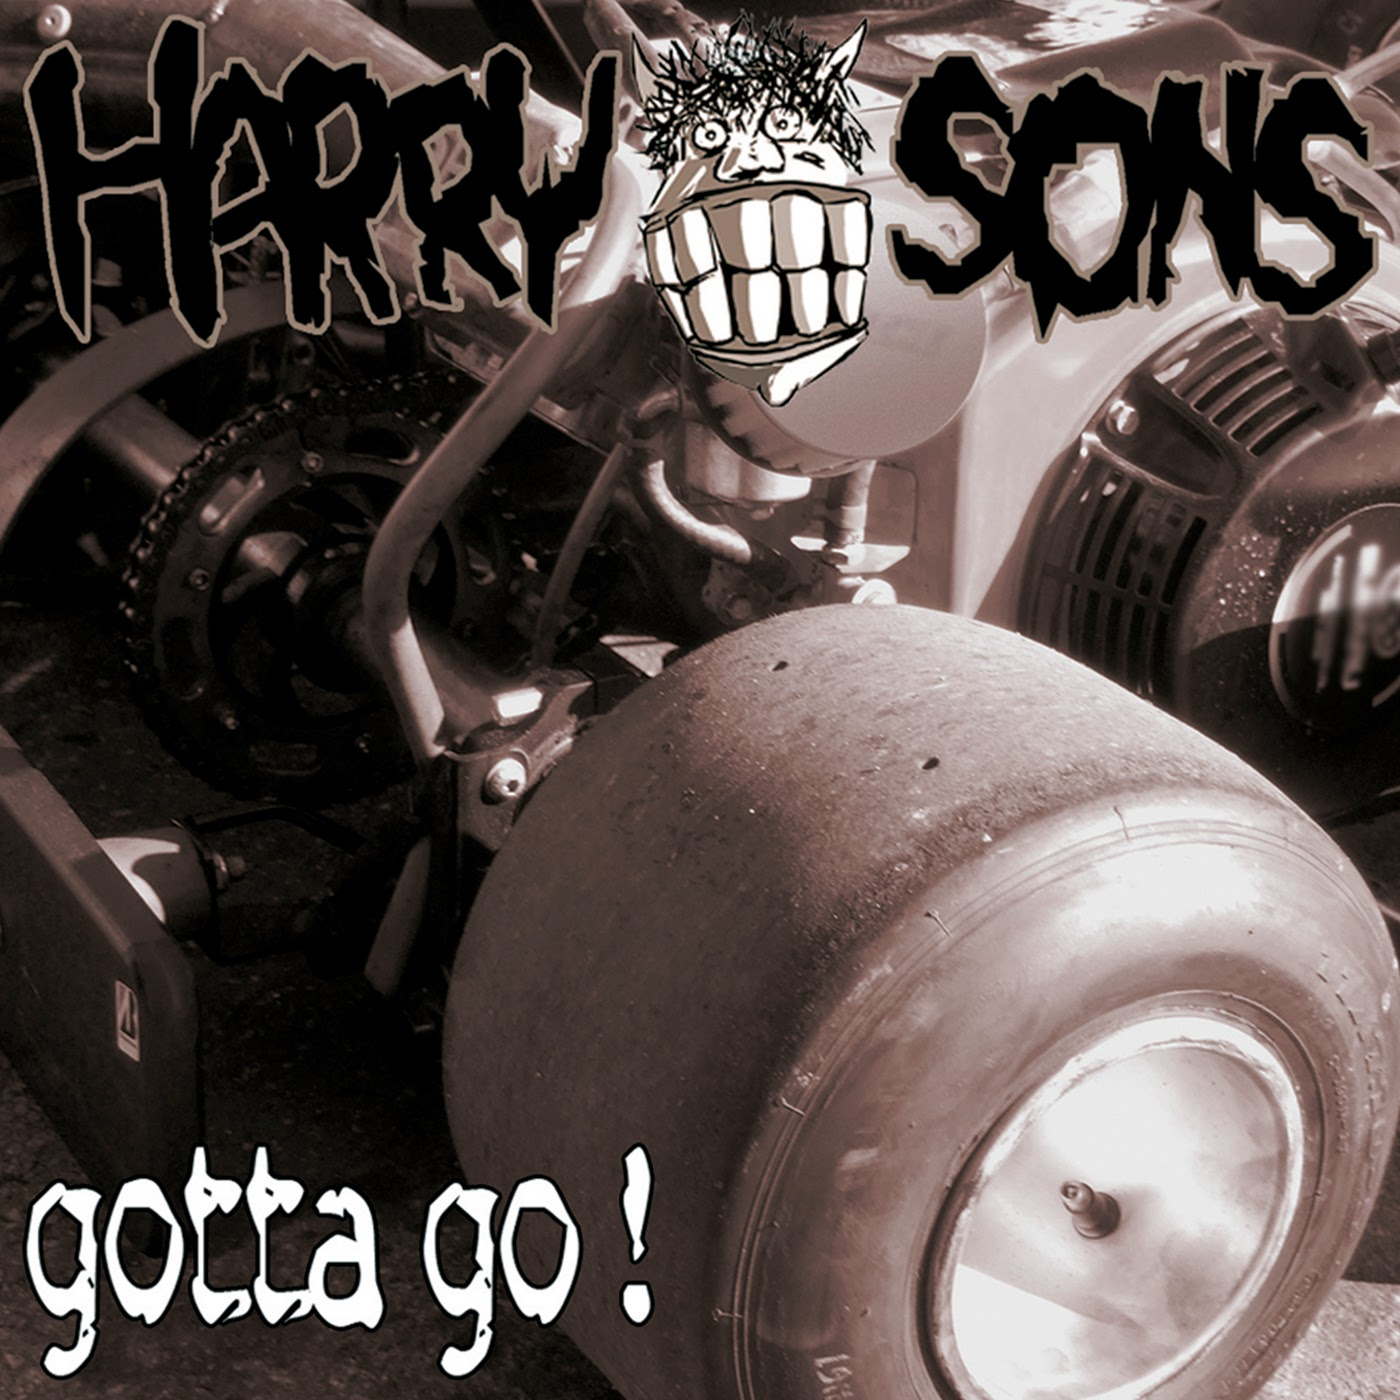 HARRYS SONS - Gotta Go! 7""